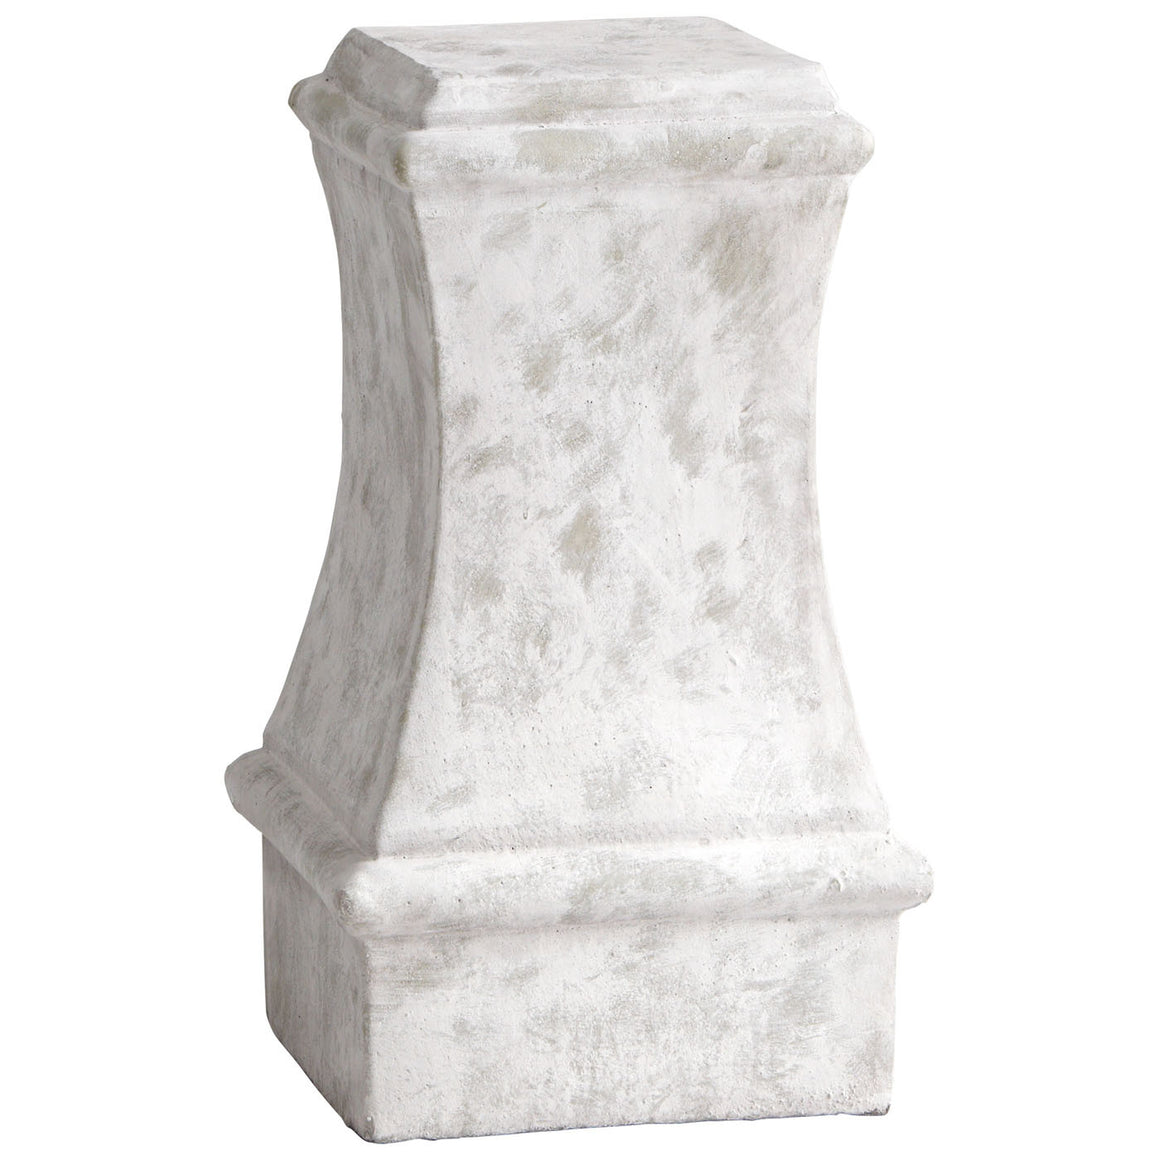 Small Dexter Pedestal 05686 by Cyan Design